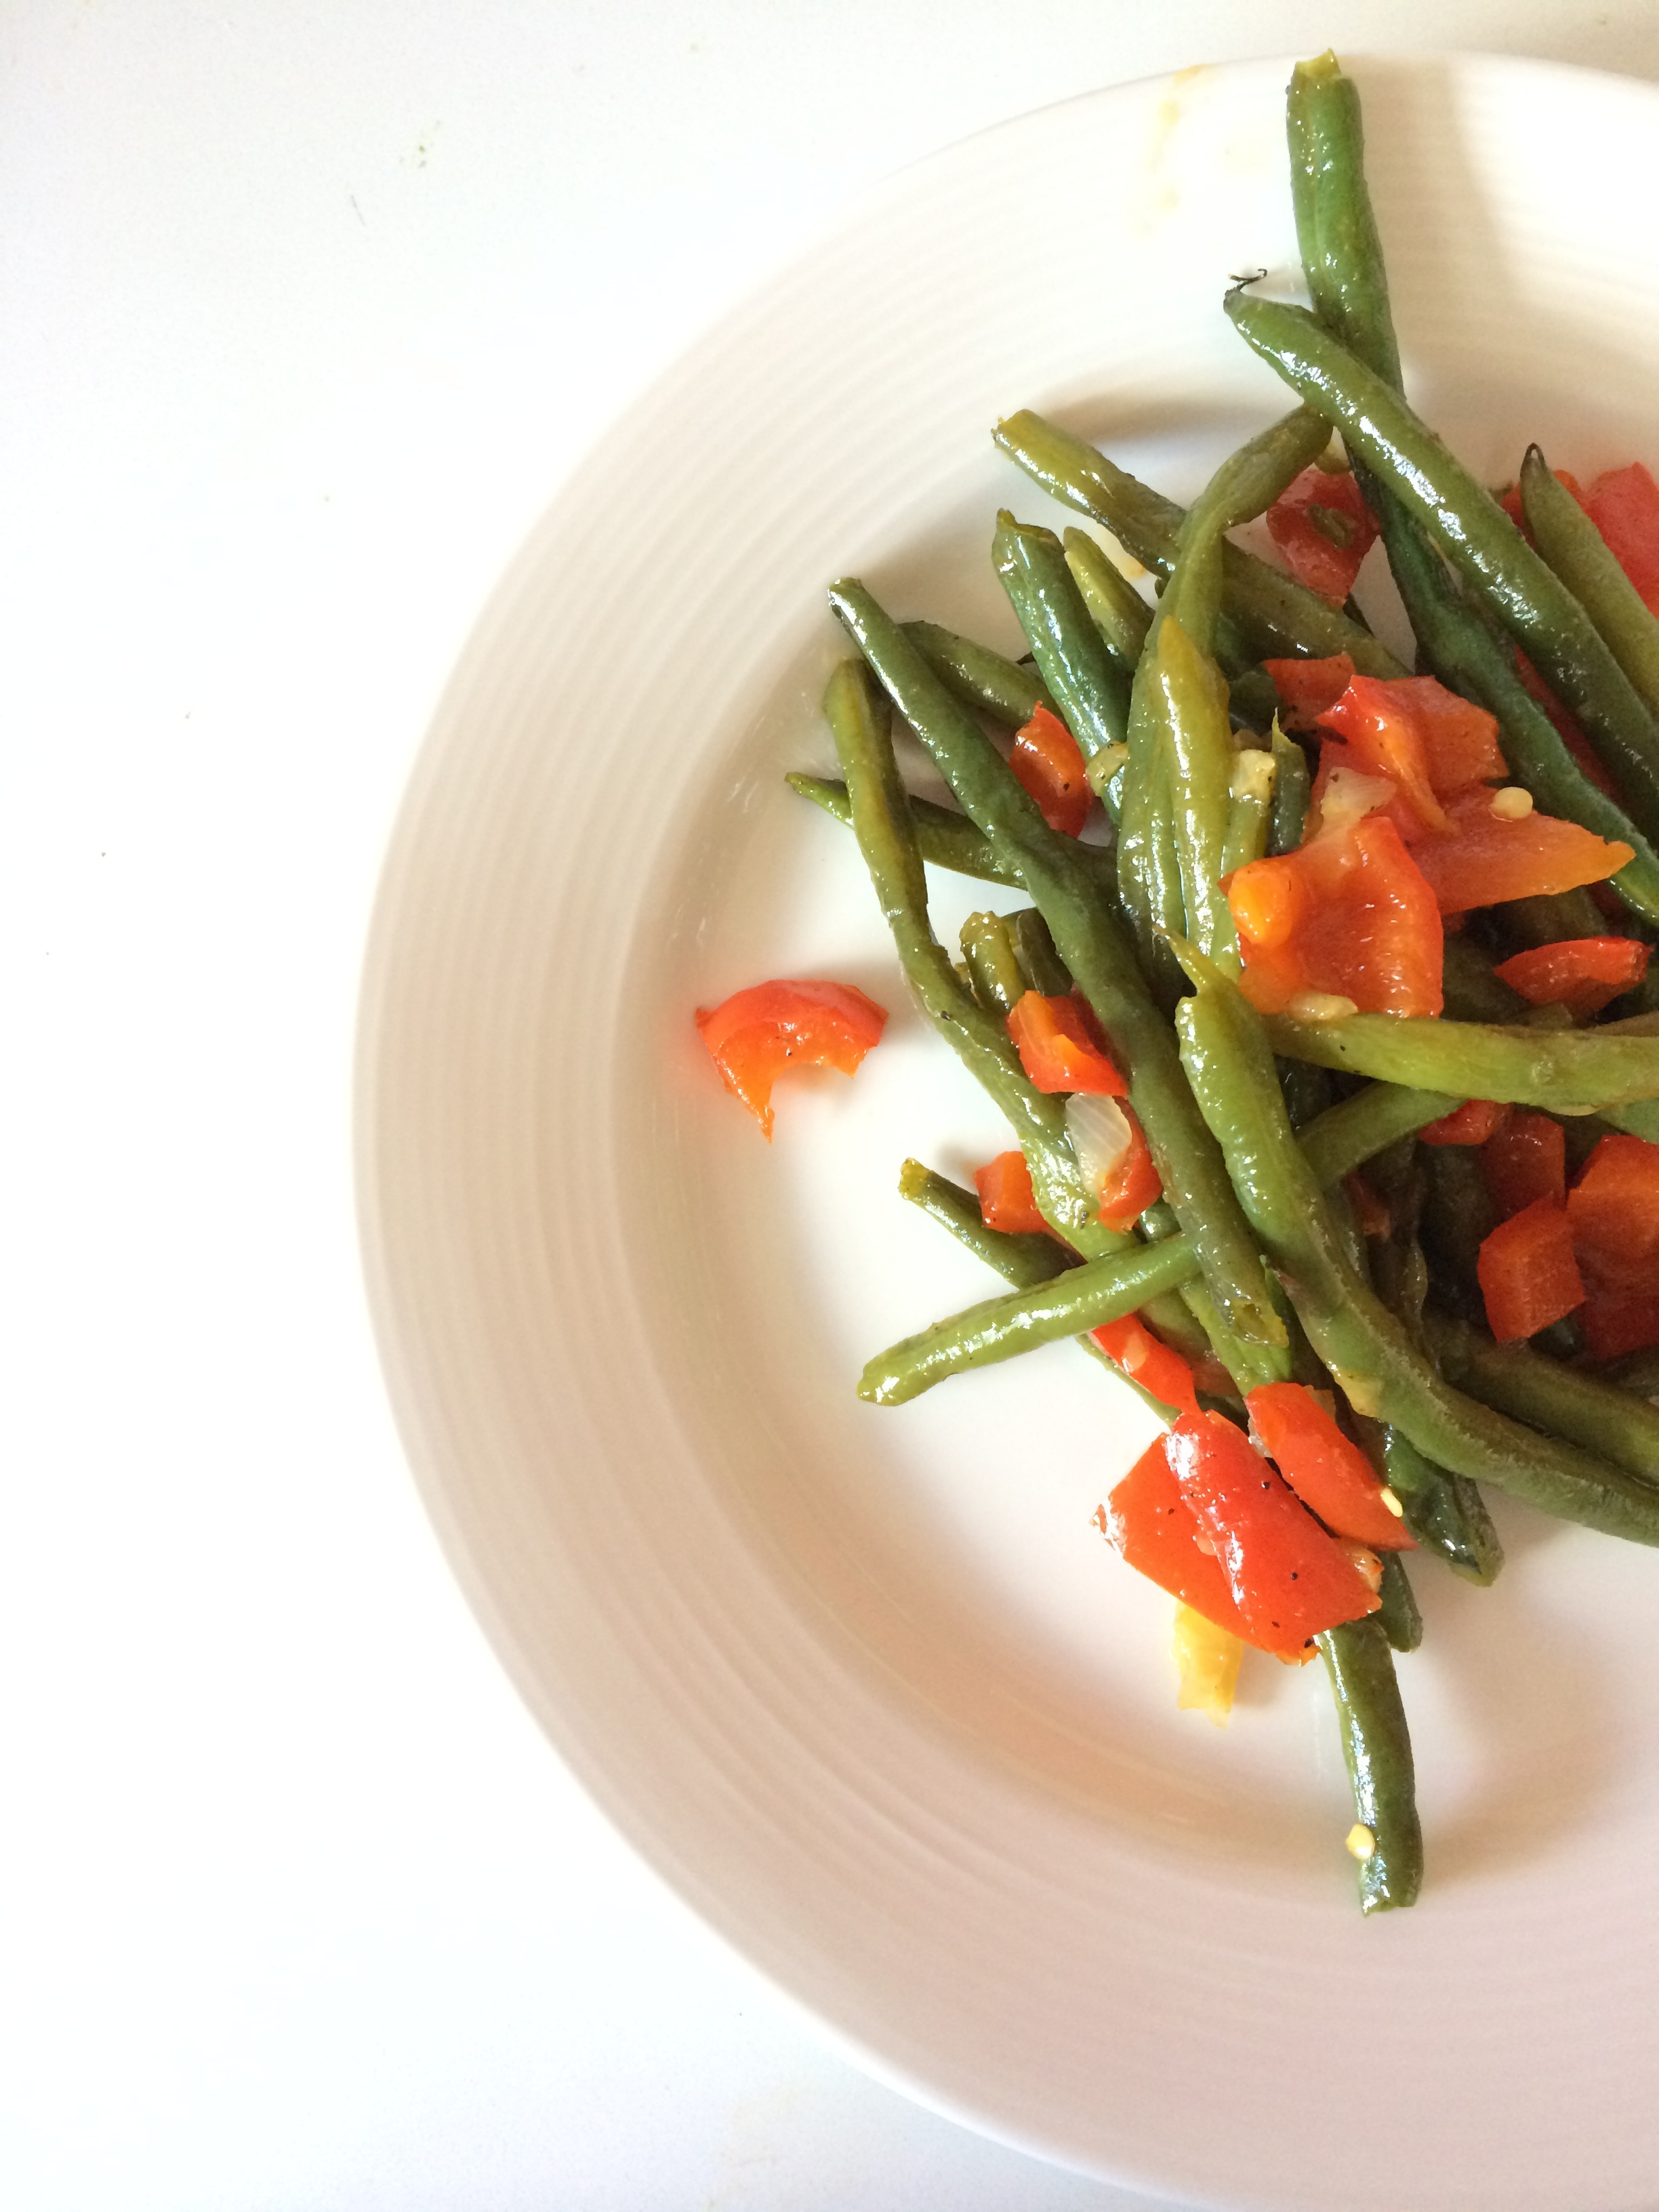 My CSA has brought an abundance of green beans. I made  The Pioneer Woman's recipe  but substituted the bacon fat for coconut oil. It was so good, I had seconds and made them again for dinner. (insert wide eyed emoji)